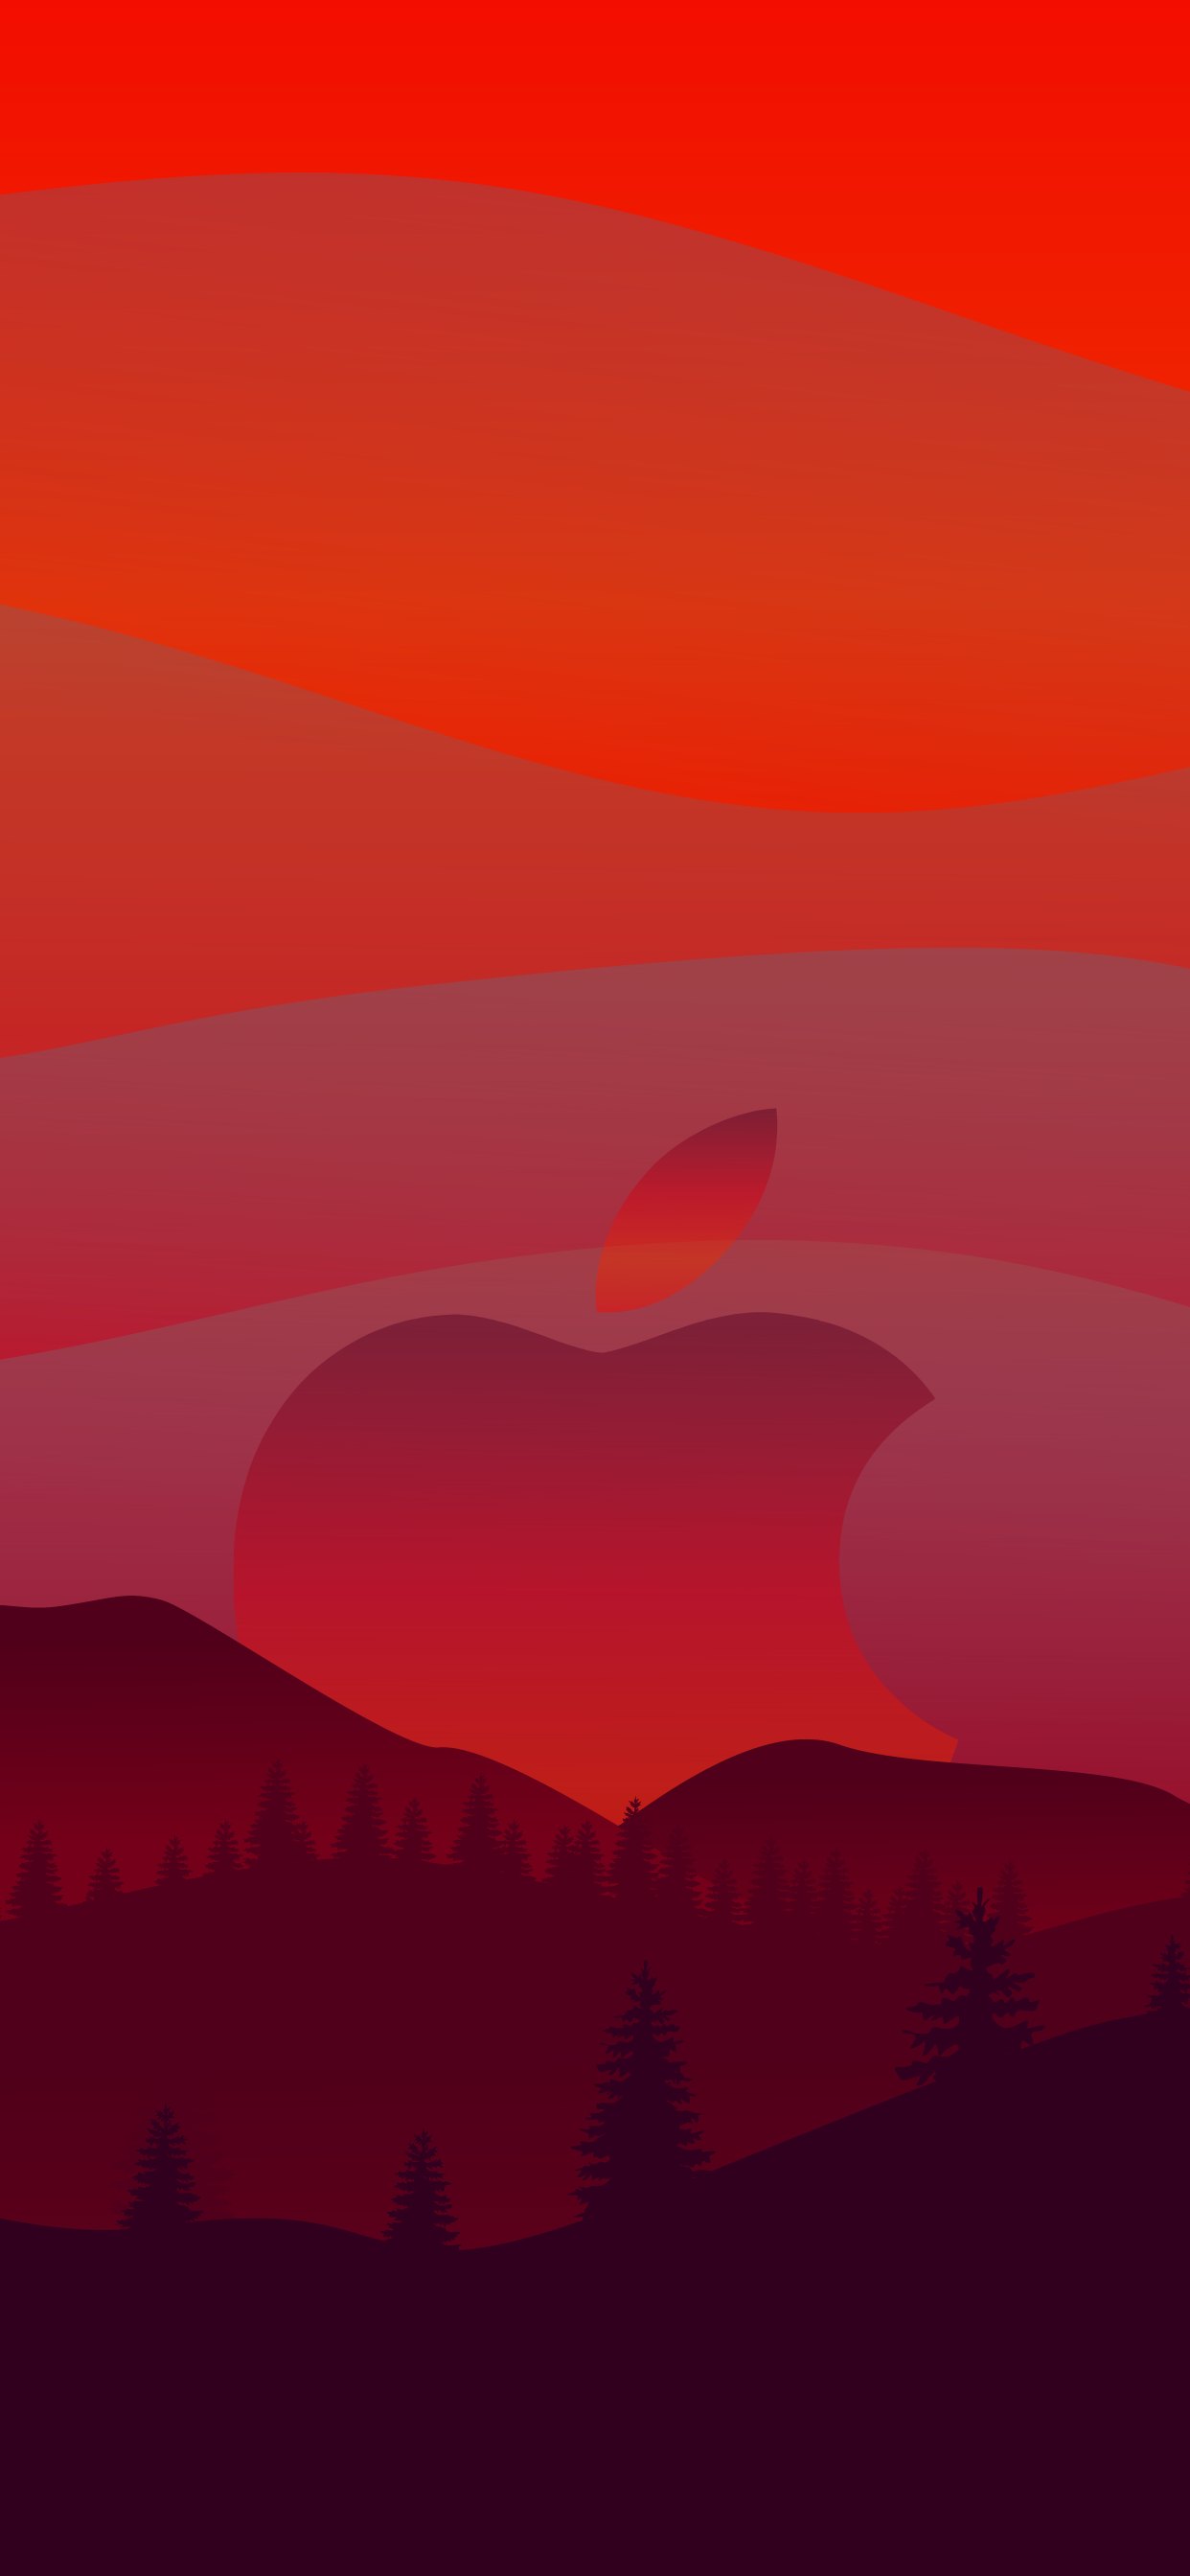 Apple red wallpaper iphone hd